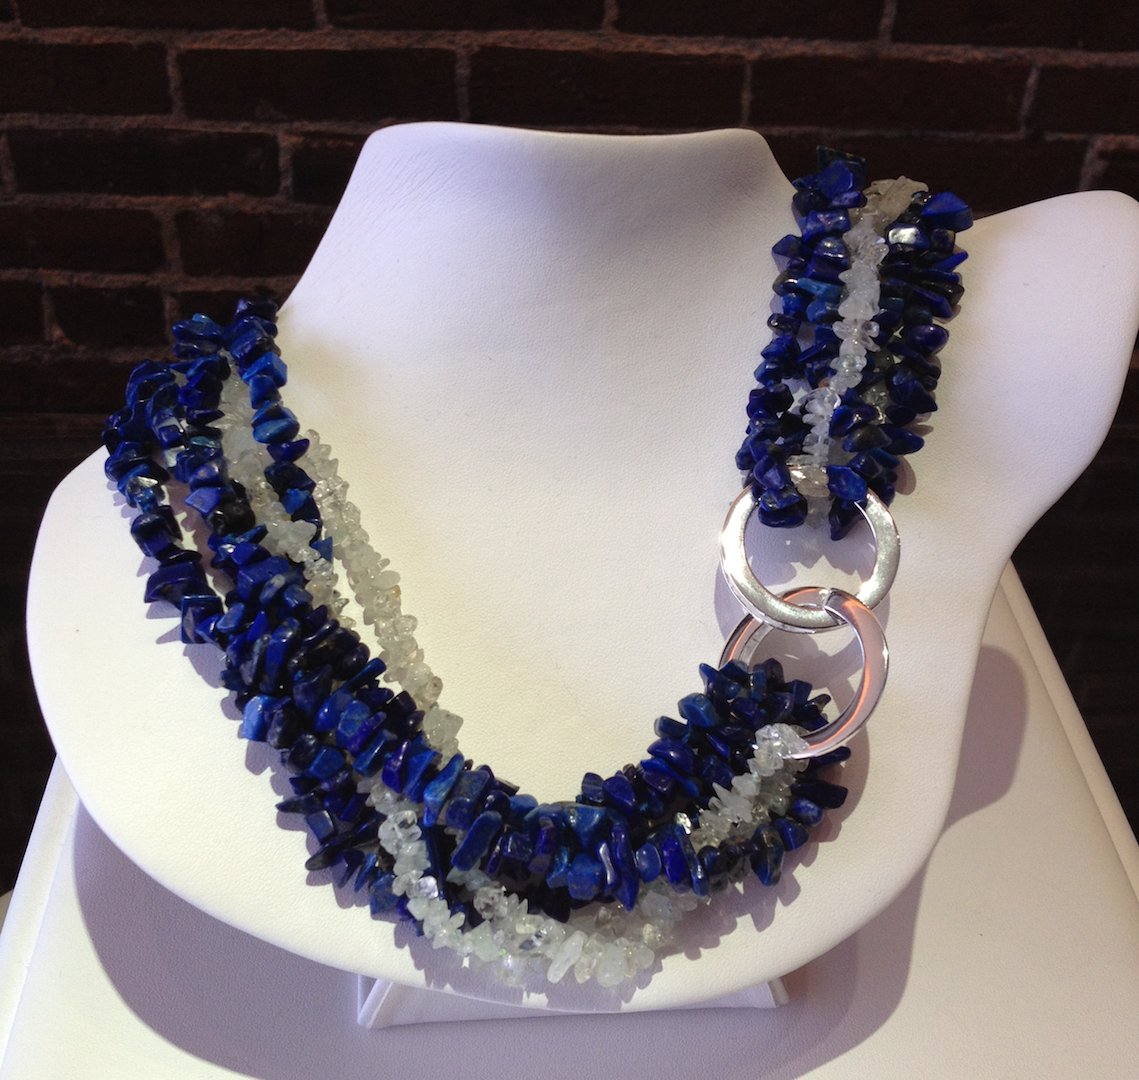 Lapis and aquamarine beads with a sterling silver catch